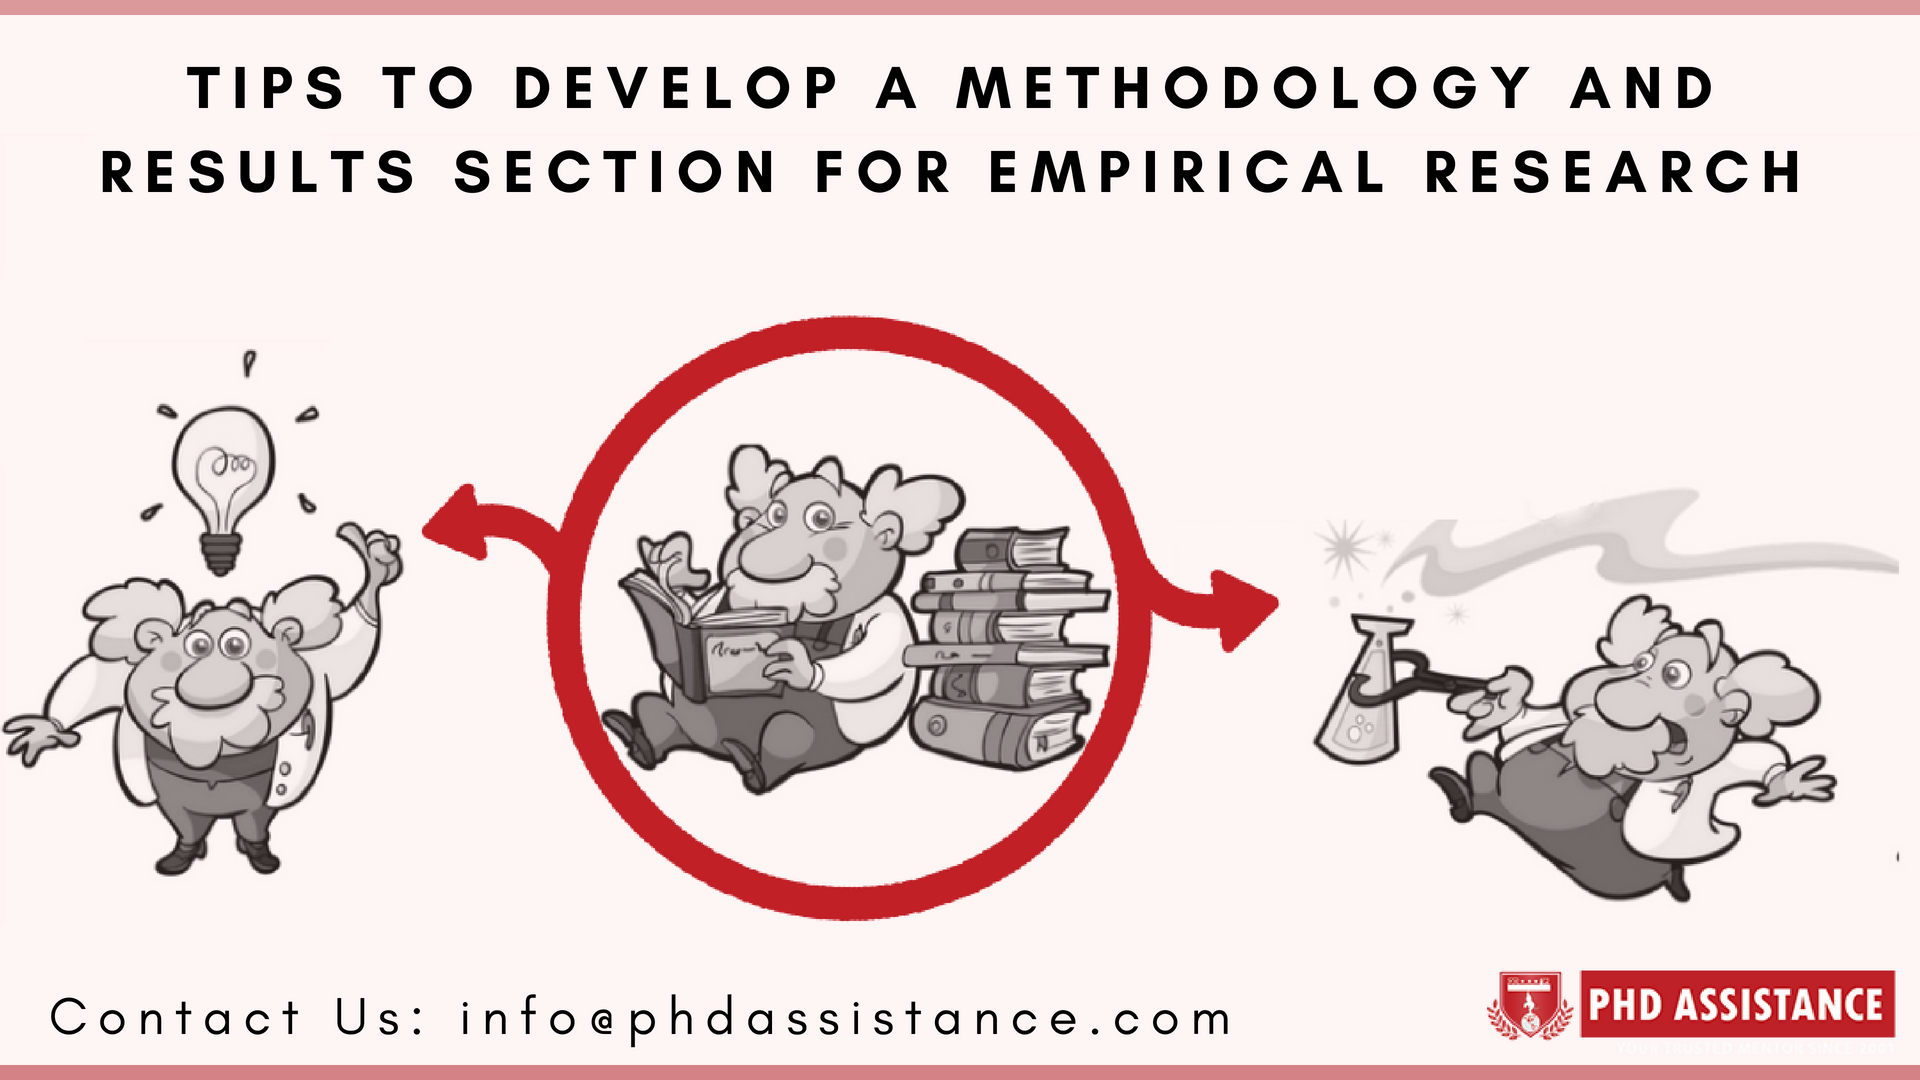 Tipson How to Check the Validity of an Empirical Study, and Develop a Methodologyand Results Section